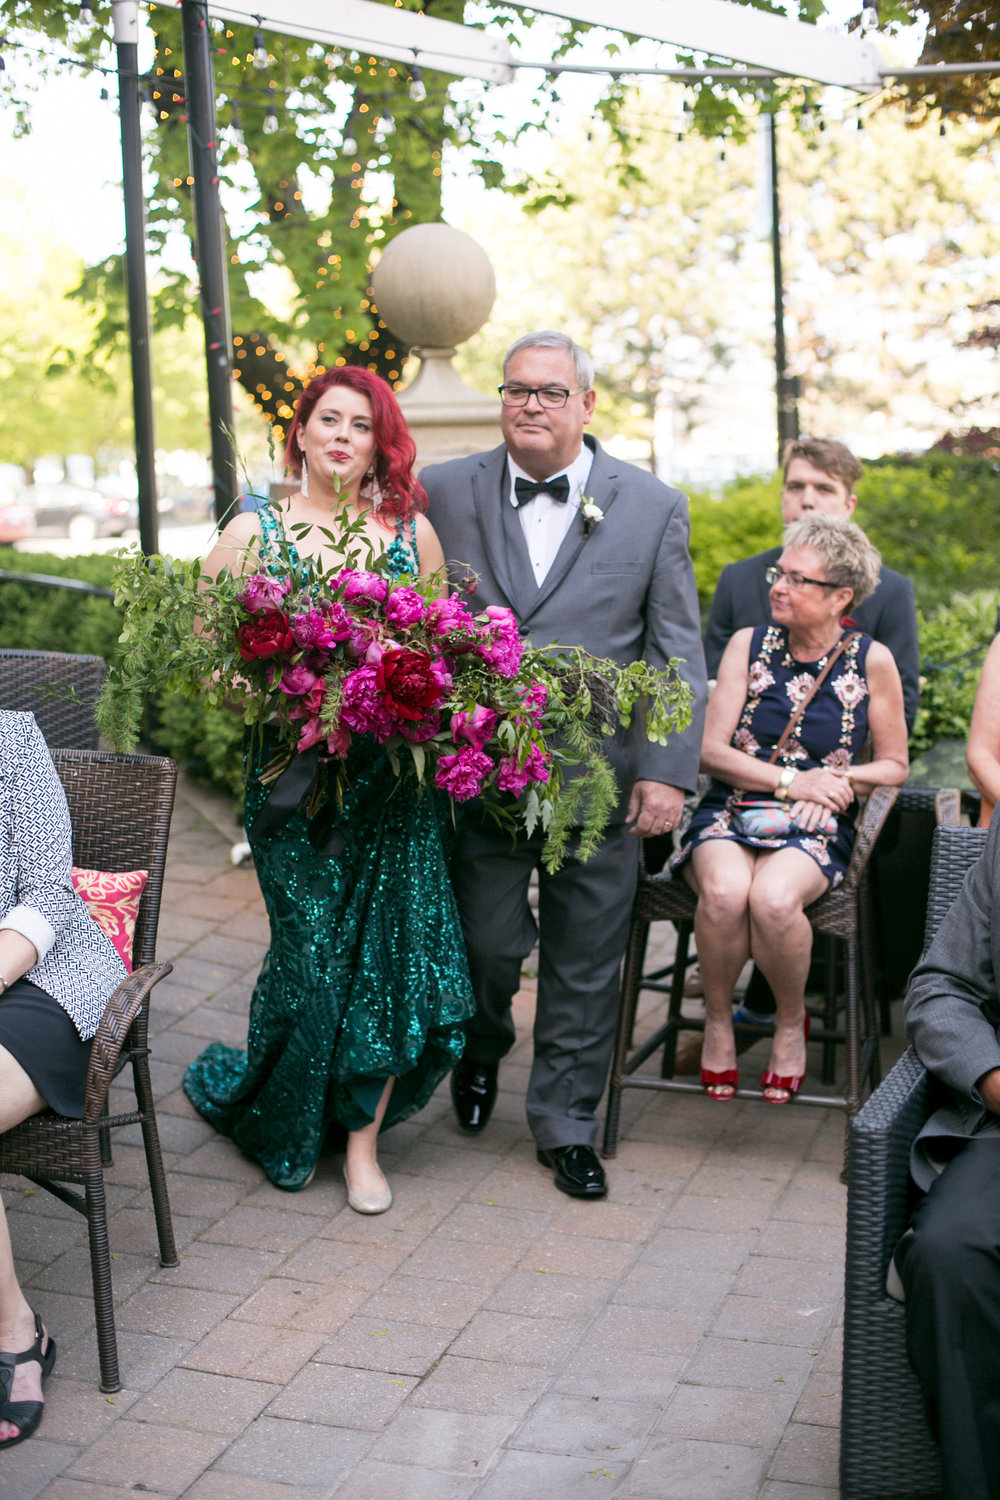 265-shuck-halifax-wedding-.jpg